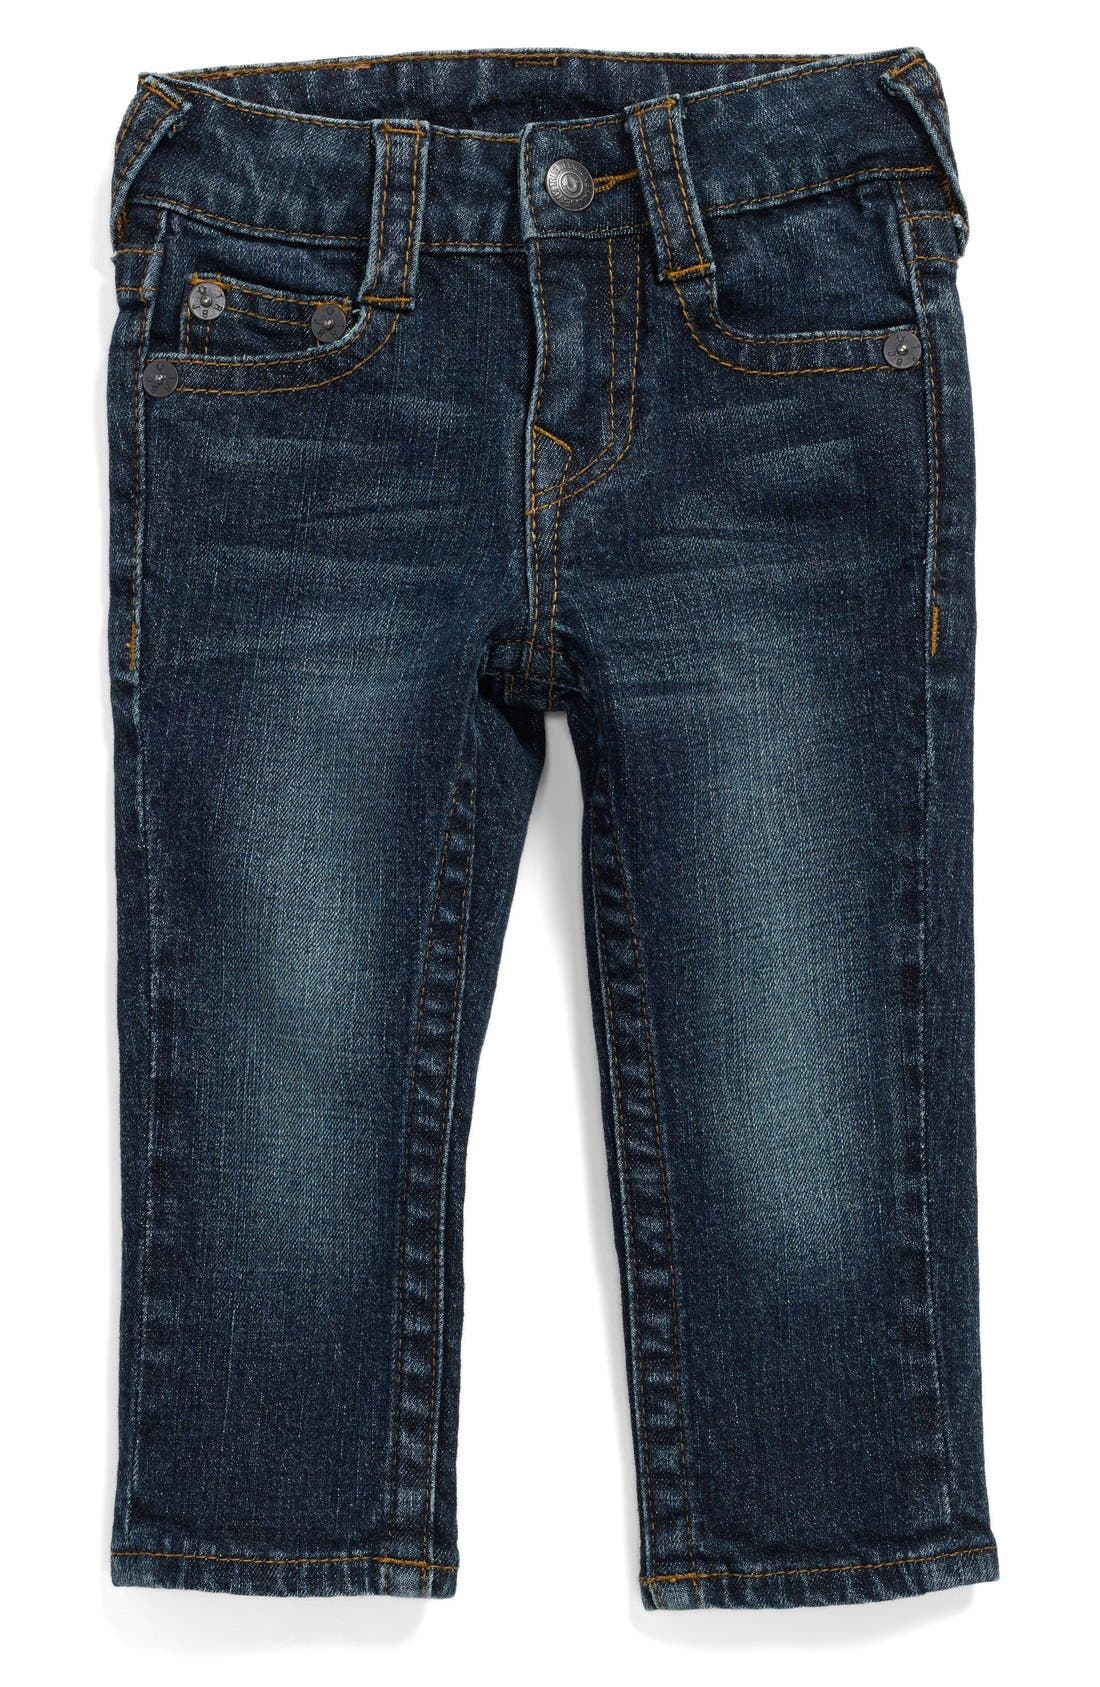 True Religion Brand Jeans 'Geno' Relaxed Slim Fit Classic Jeans (Baby Boys) (Online Exclusive)